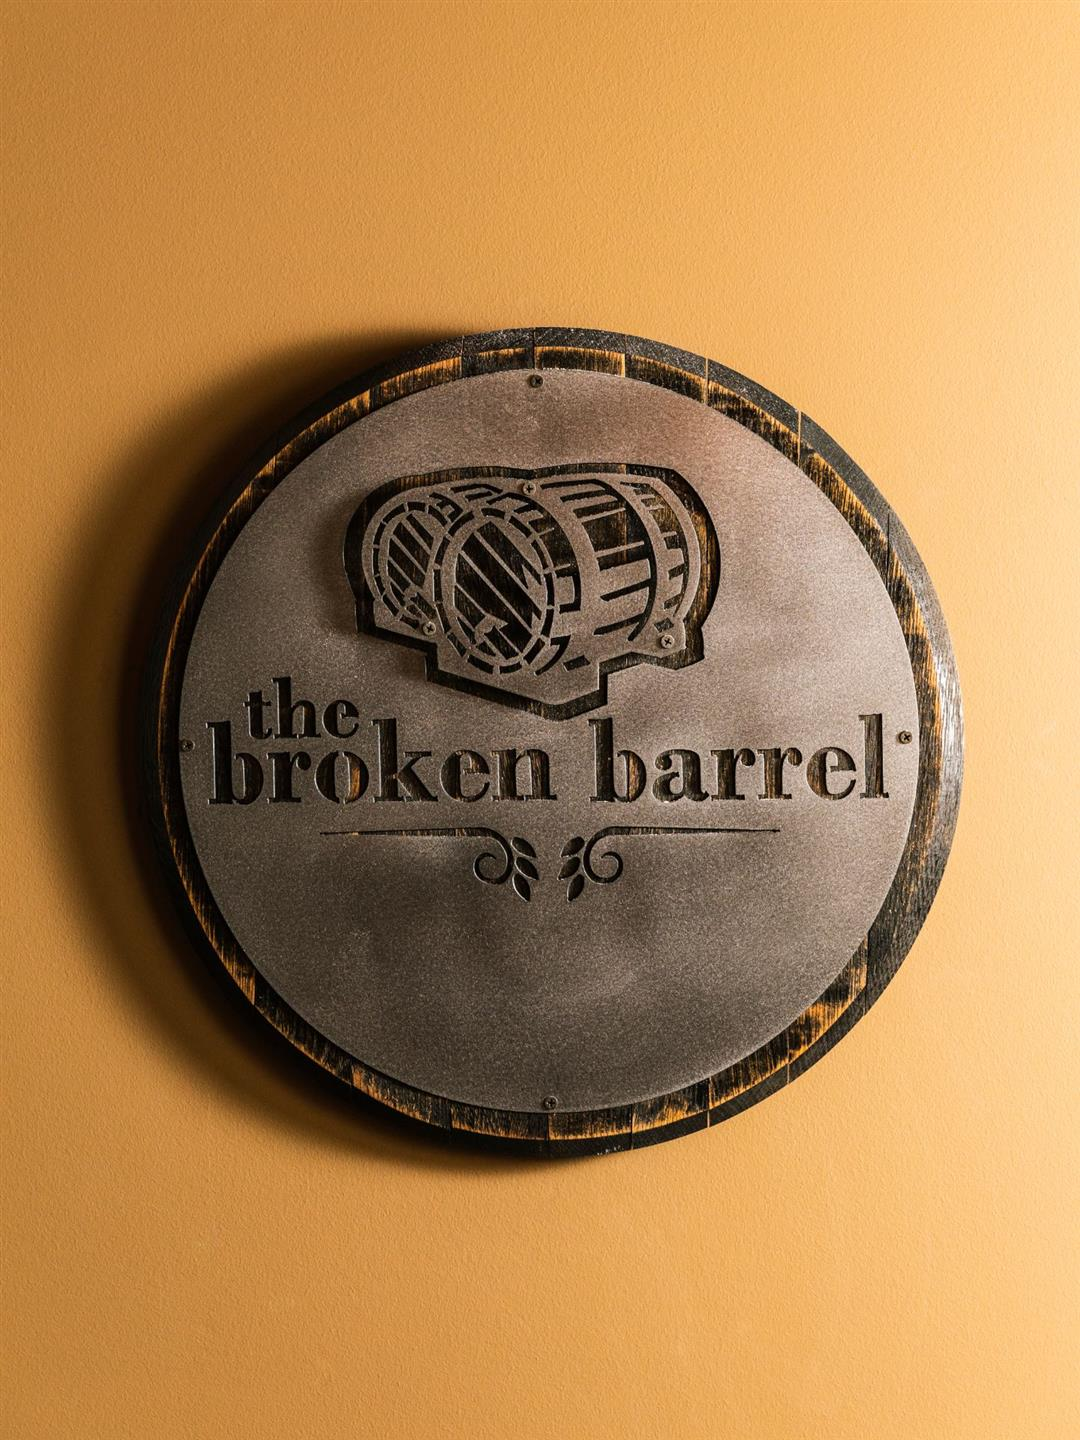 The Broken Barrel sign on a wall